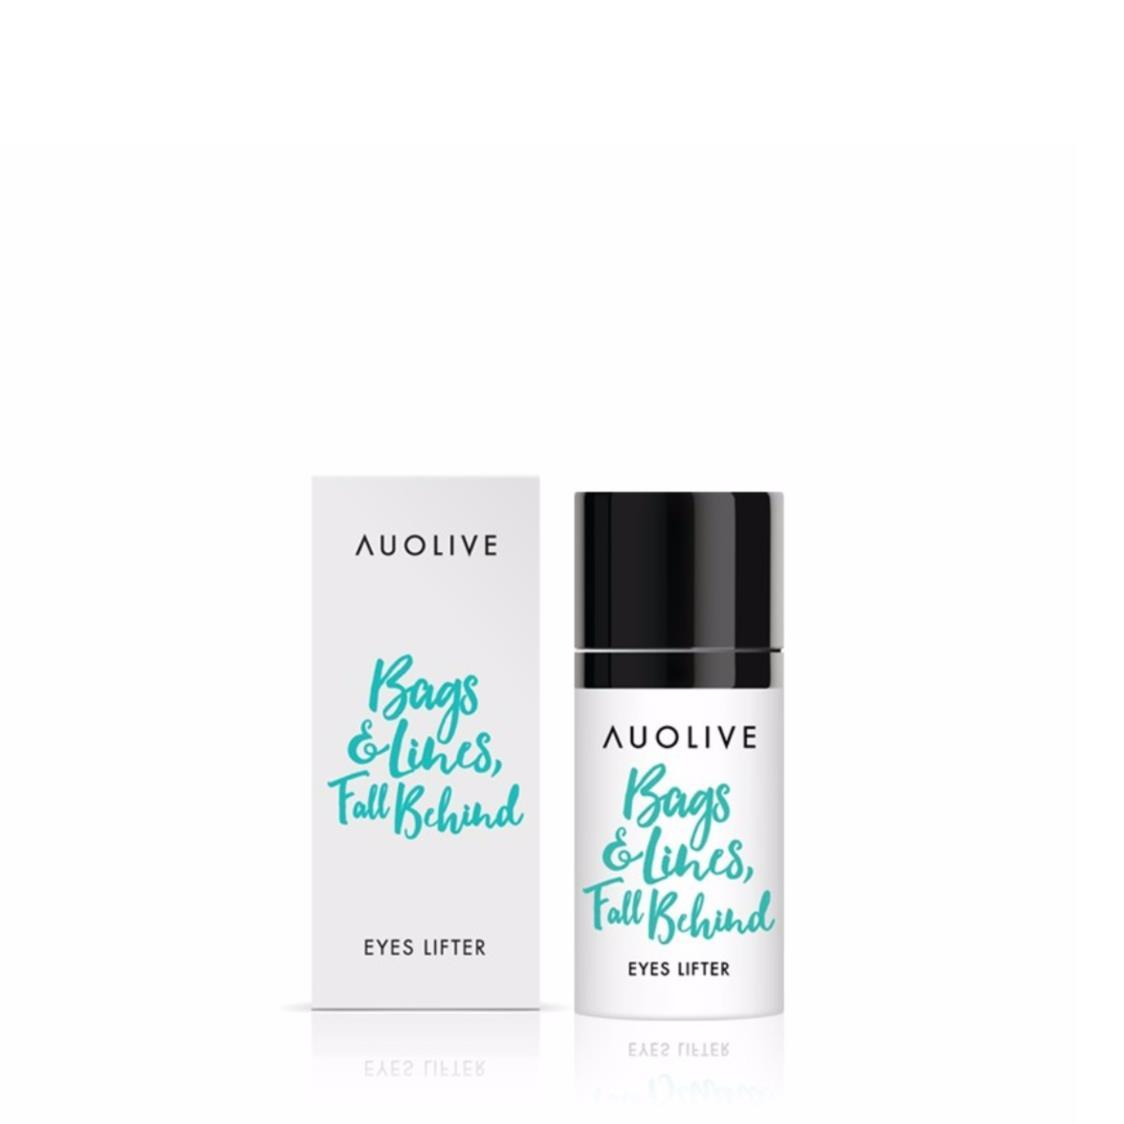 Auolive Eyes Lifter 15ml